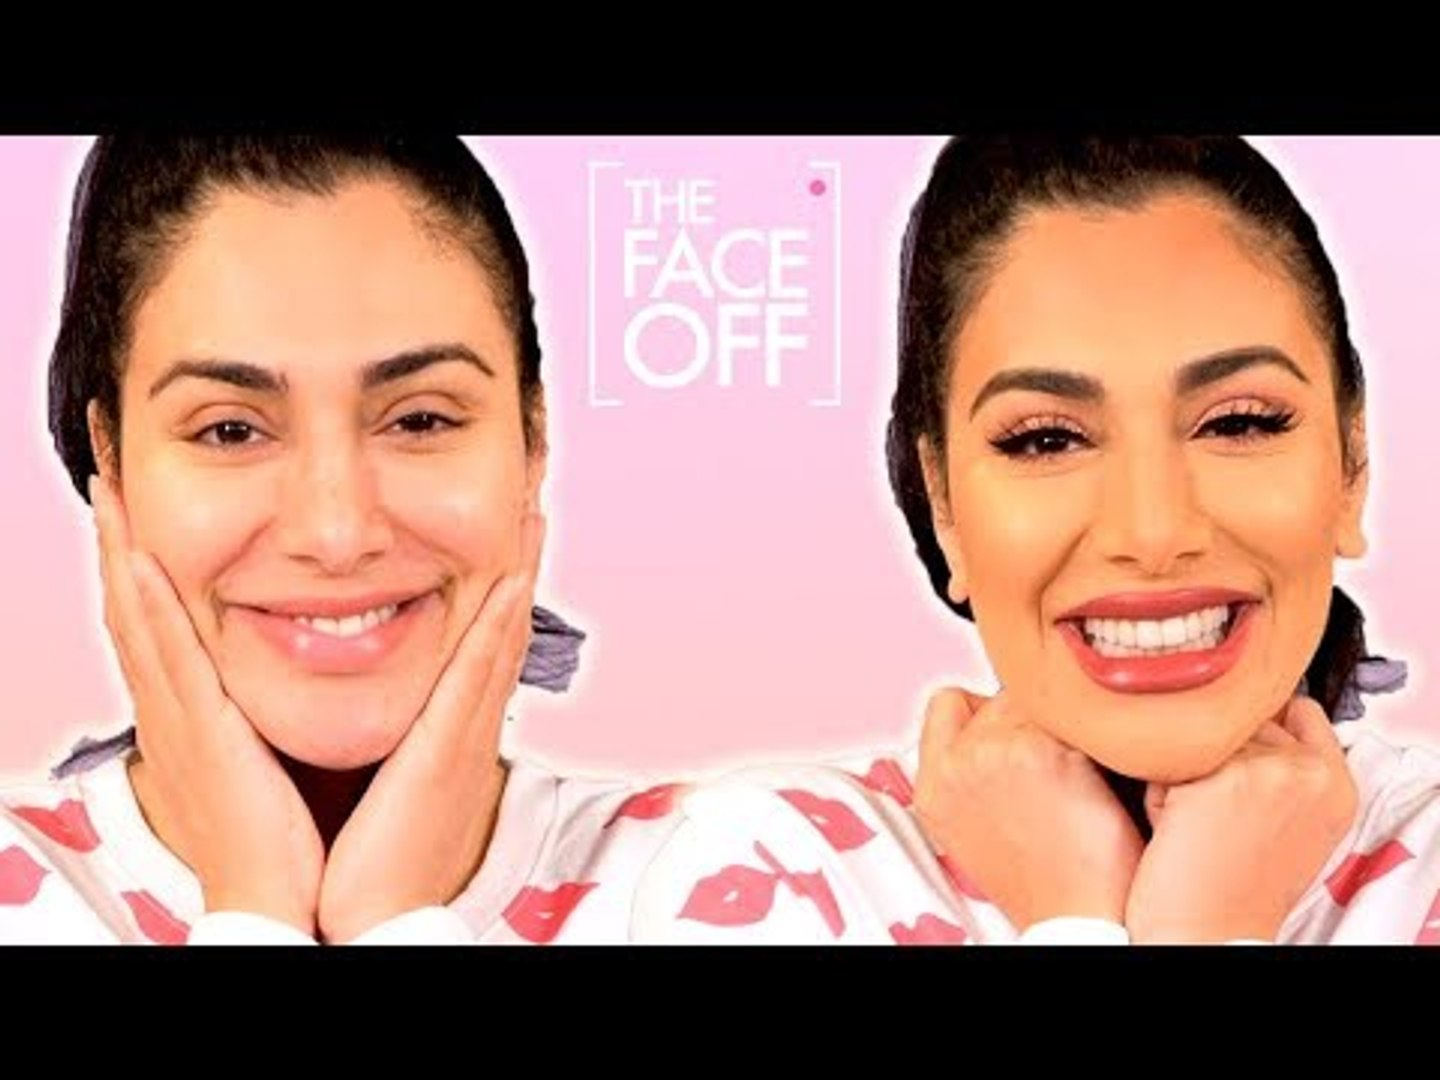 Huda Kattan S Full Makeup Routine Bare Faced To Full Glam The Face Off Cosmopolitan Uk Video Dailymotion